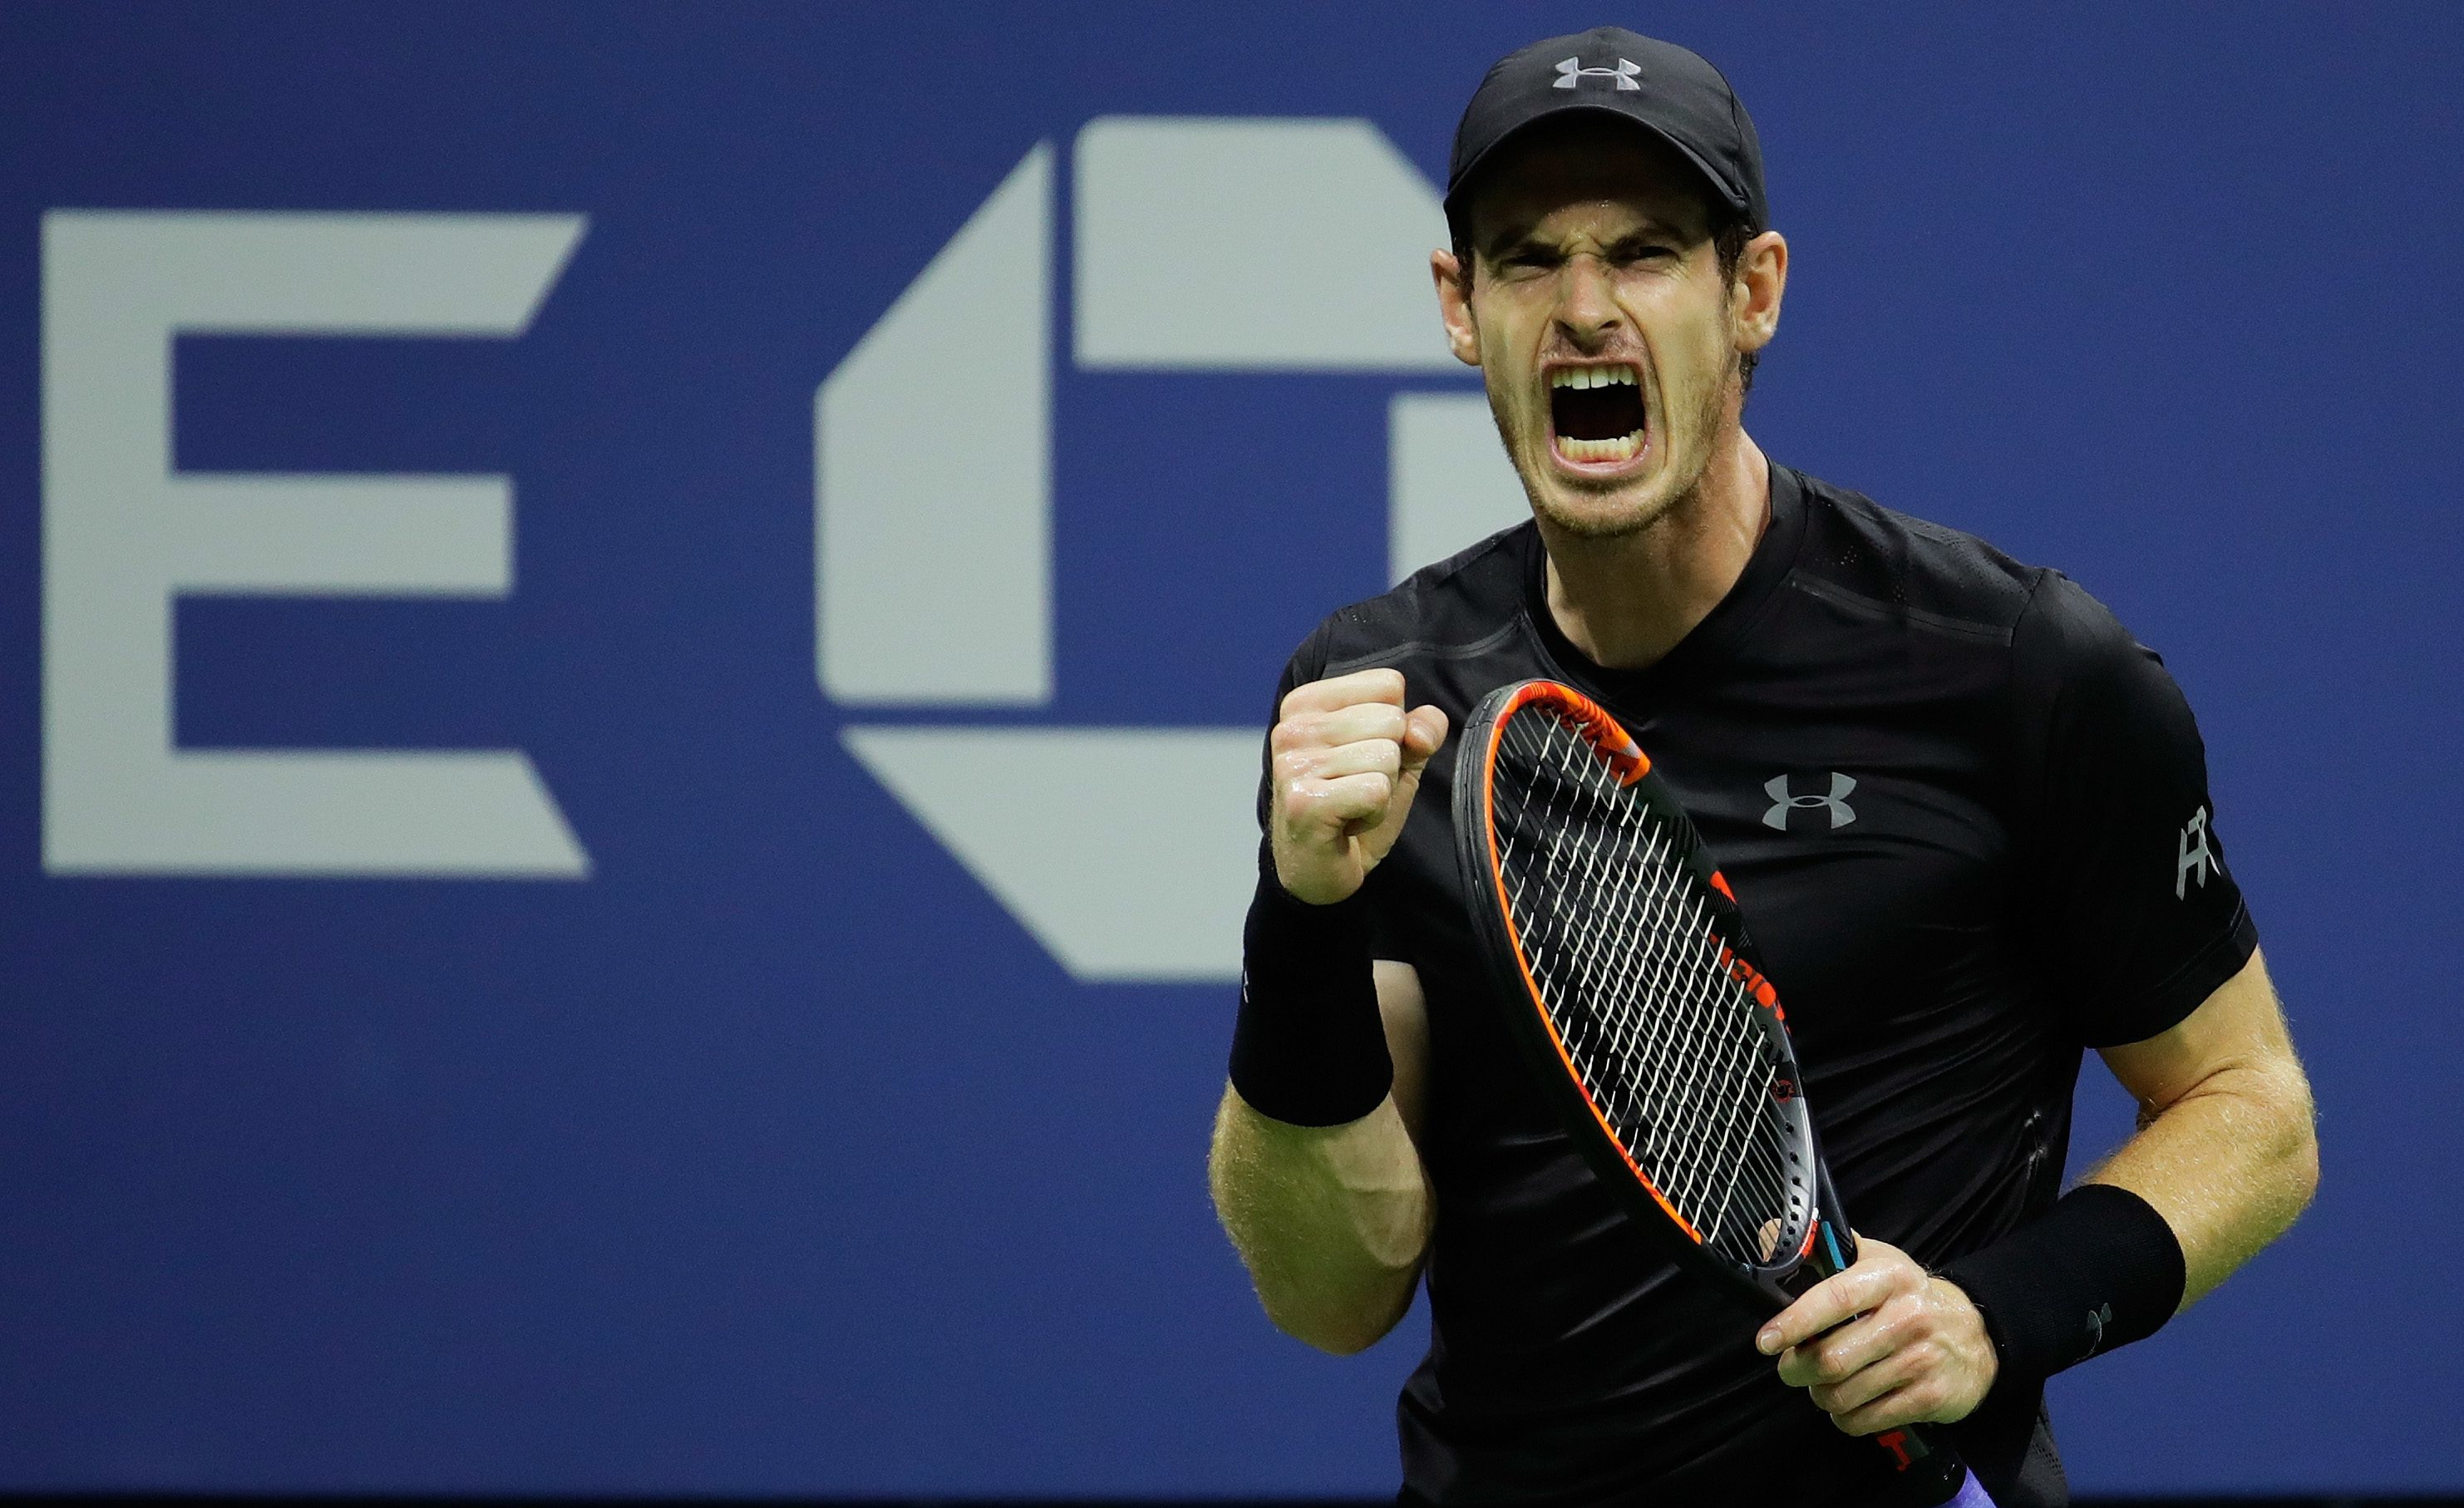 Councillors hope to tap in to Andy Murray's success